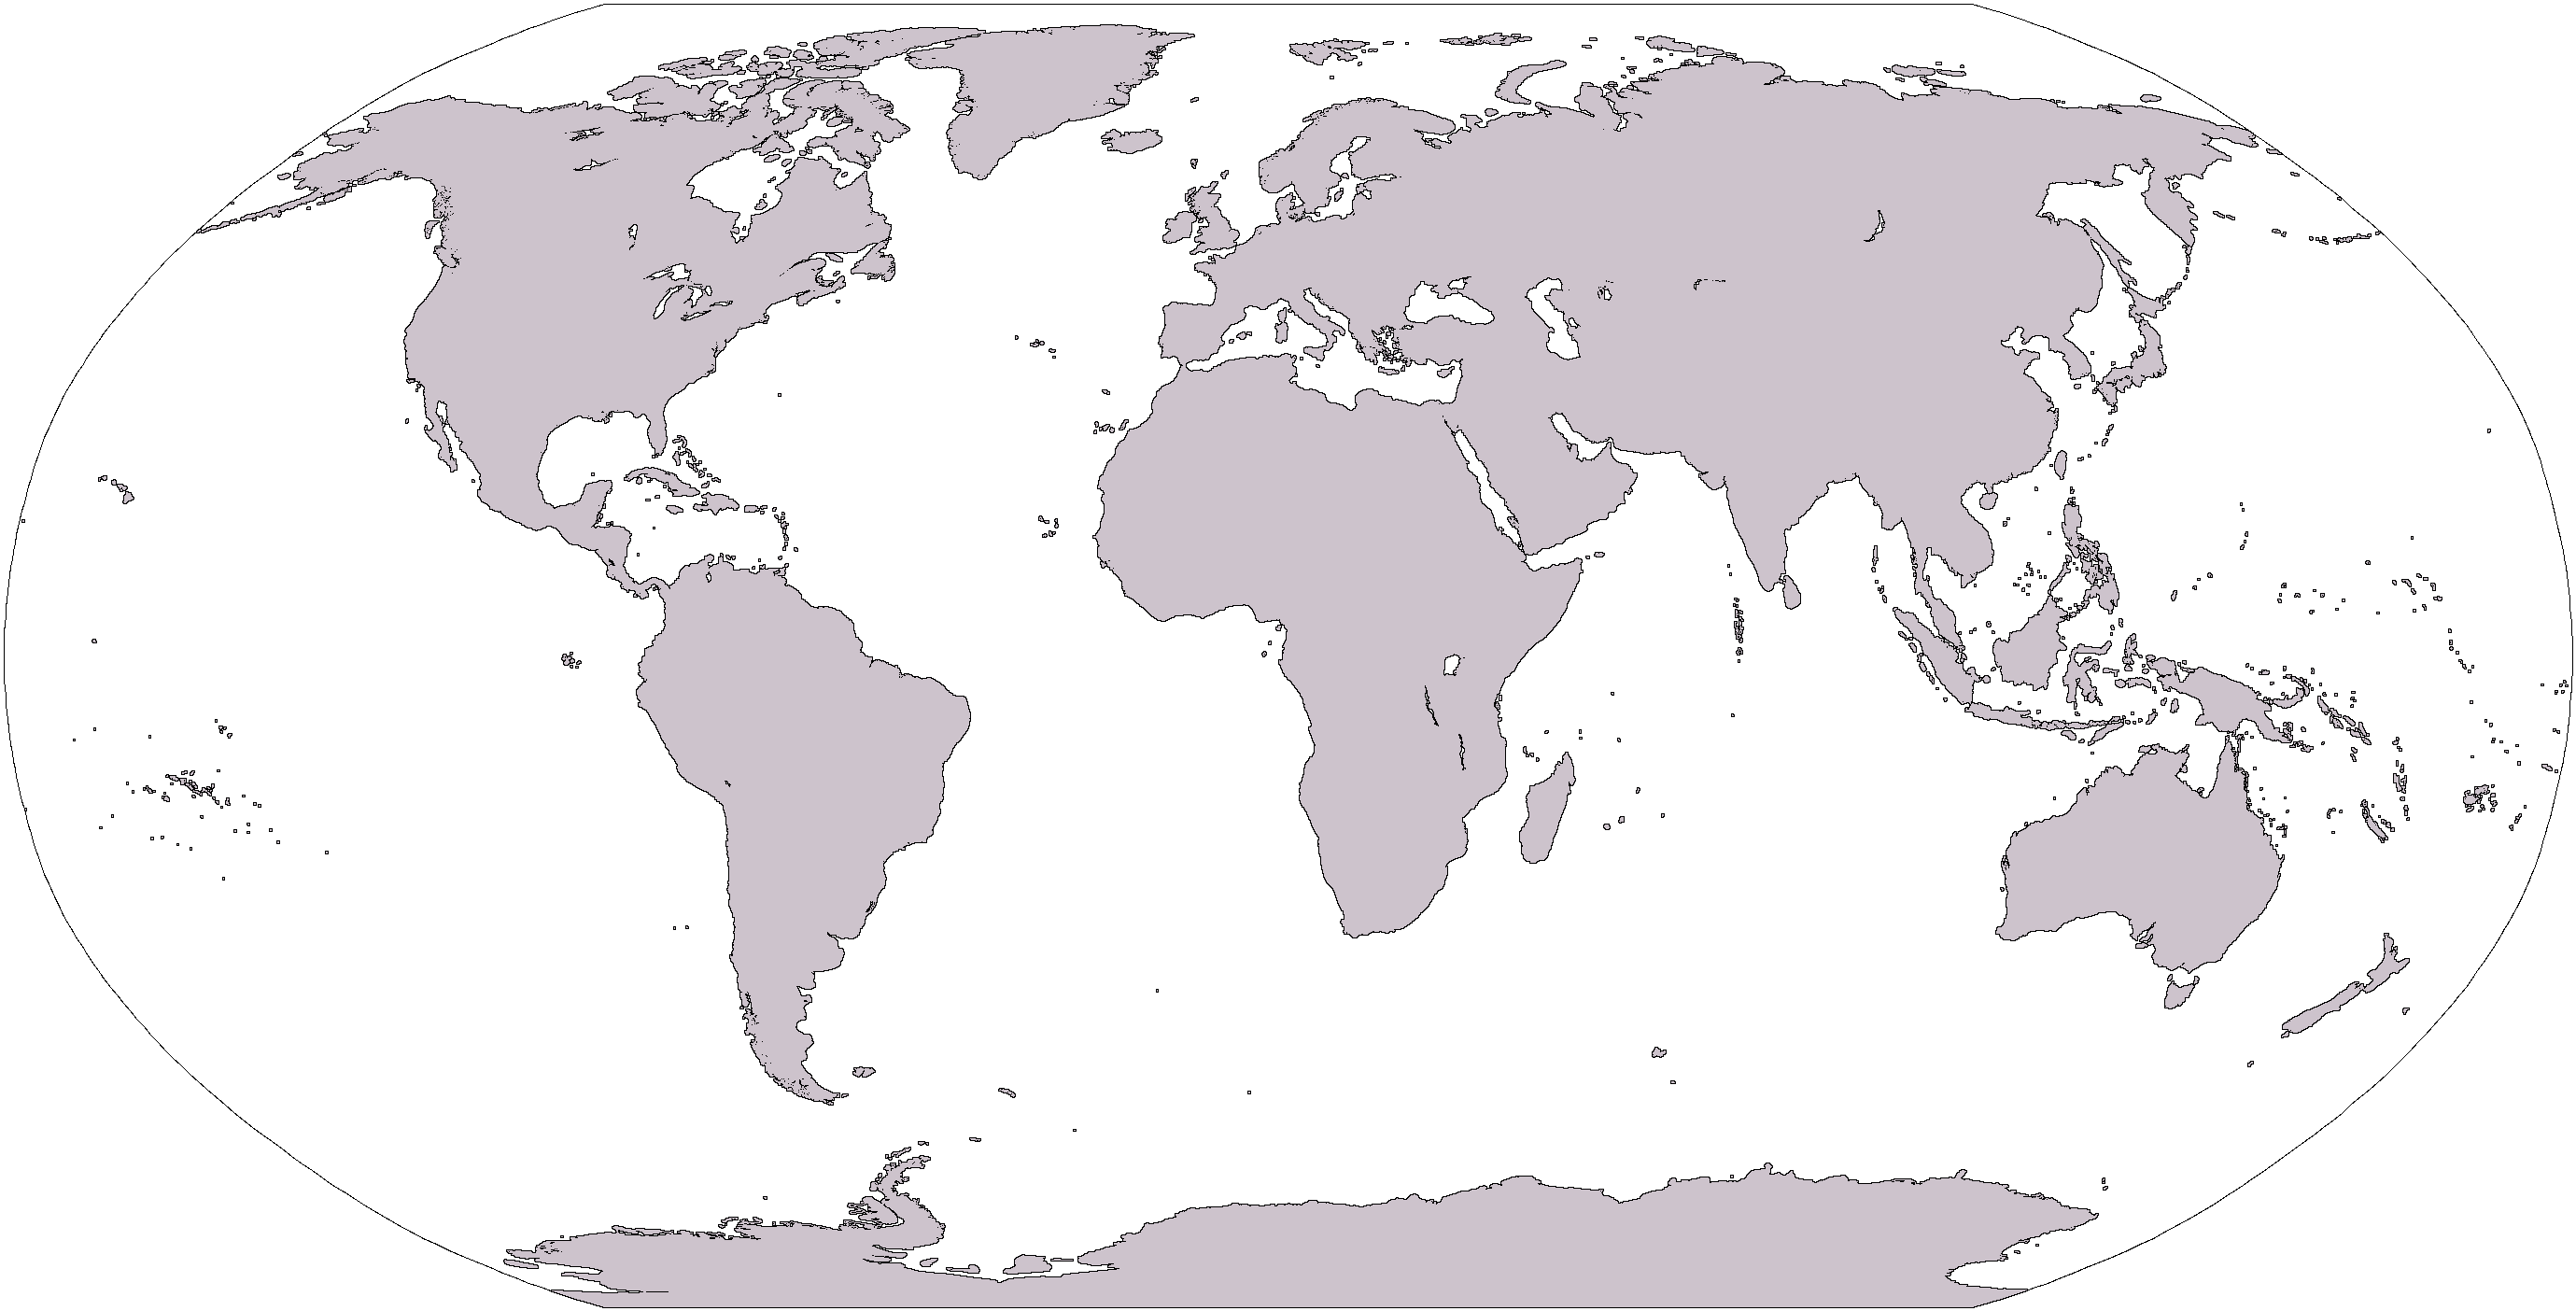 Blankmapdirectoryworld1 alternatehistory wiki wikipedia map template as above gumiabroncs Gallery